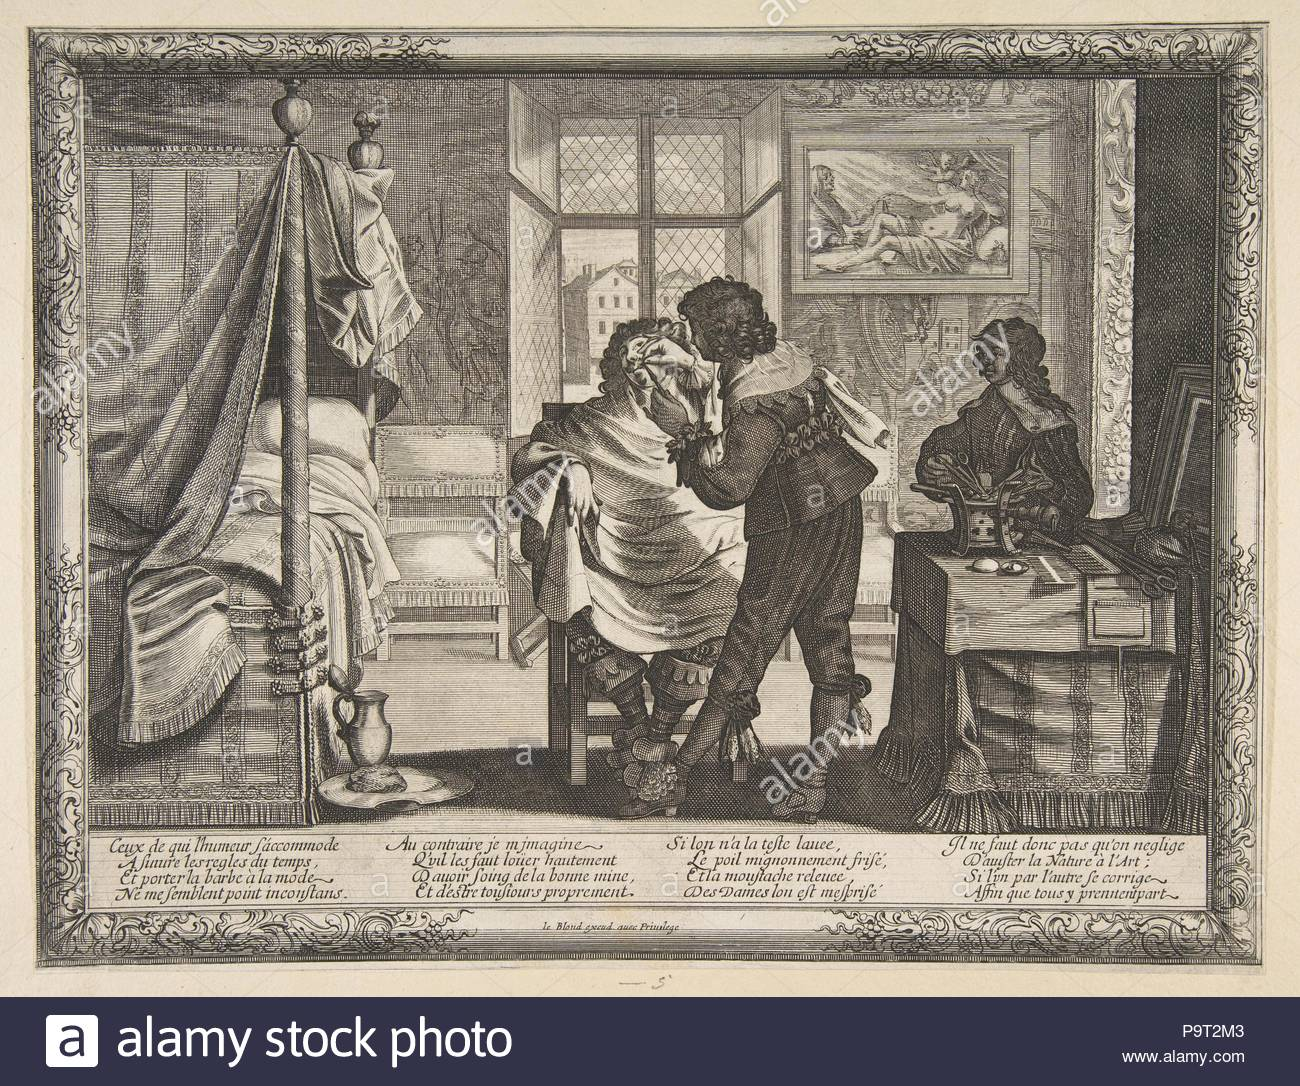 The Barber (le Barbier), ca. 1632–33, Etching, sheet: 10 1/16 x 13 1/16 in. (25.5 x 33.2 cm), Prints, Abraham Bosse (French, Tours 1602/1604–1676 Paris). - Stock Image